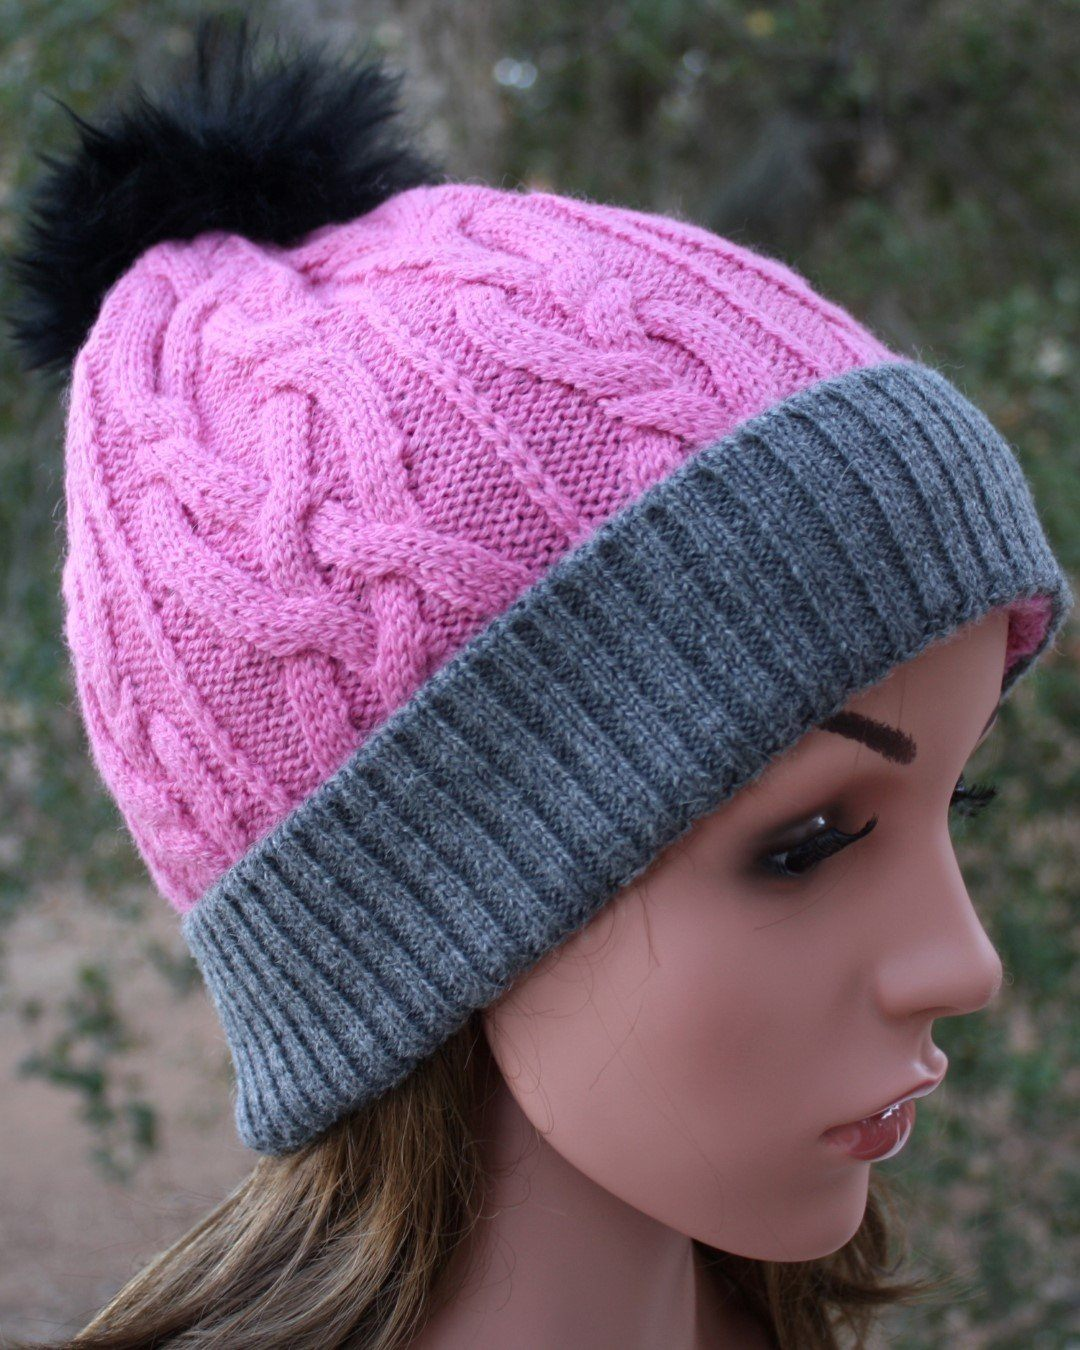 100% Alpaca Pom-Pom Hat - Soft Pink and Grey